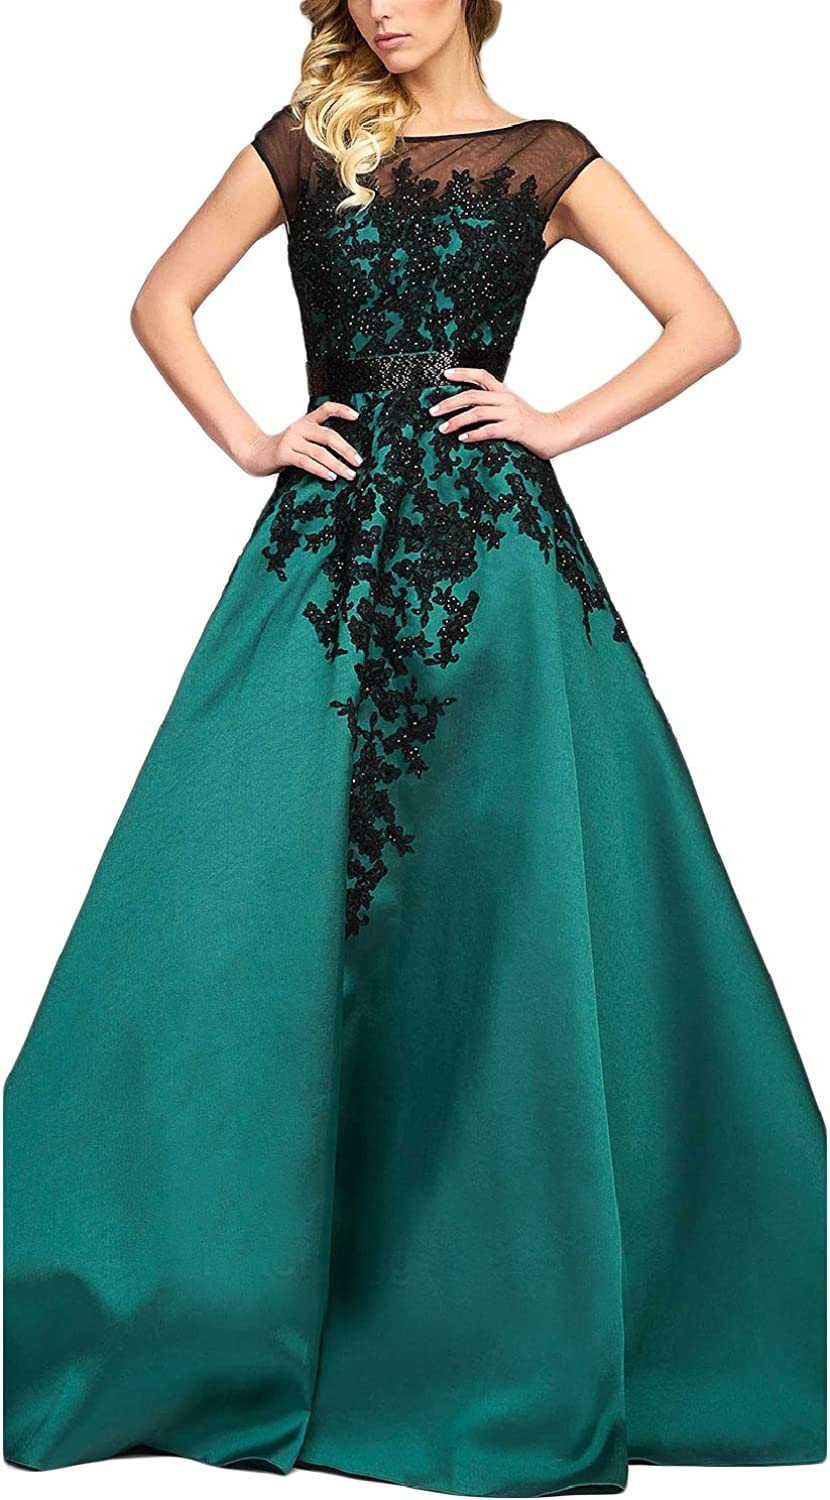 YSMei Womens Long Black Lace Applique Ball Gown Backless Satin Prom Dress YEV035